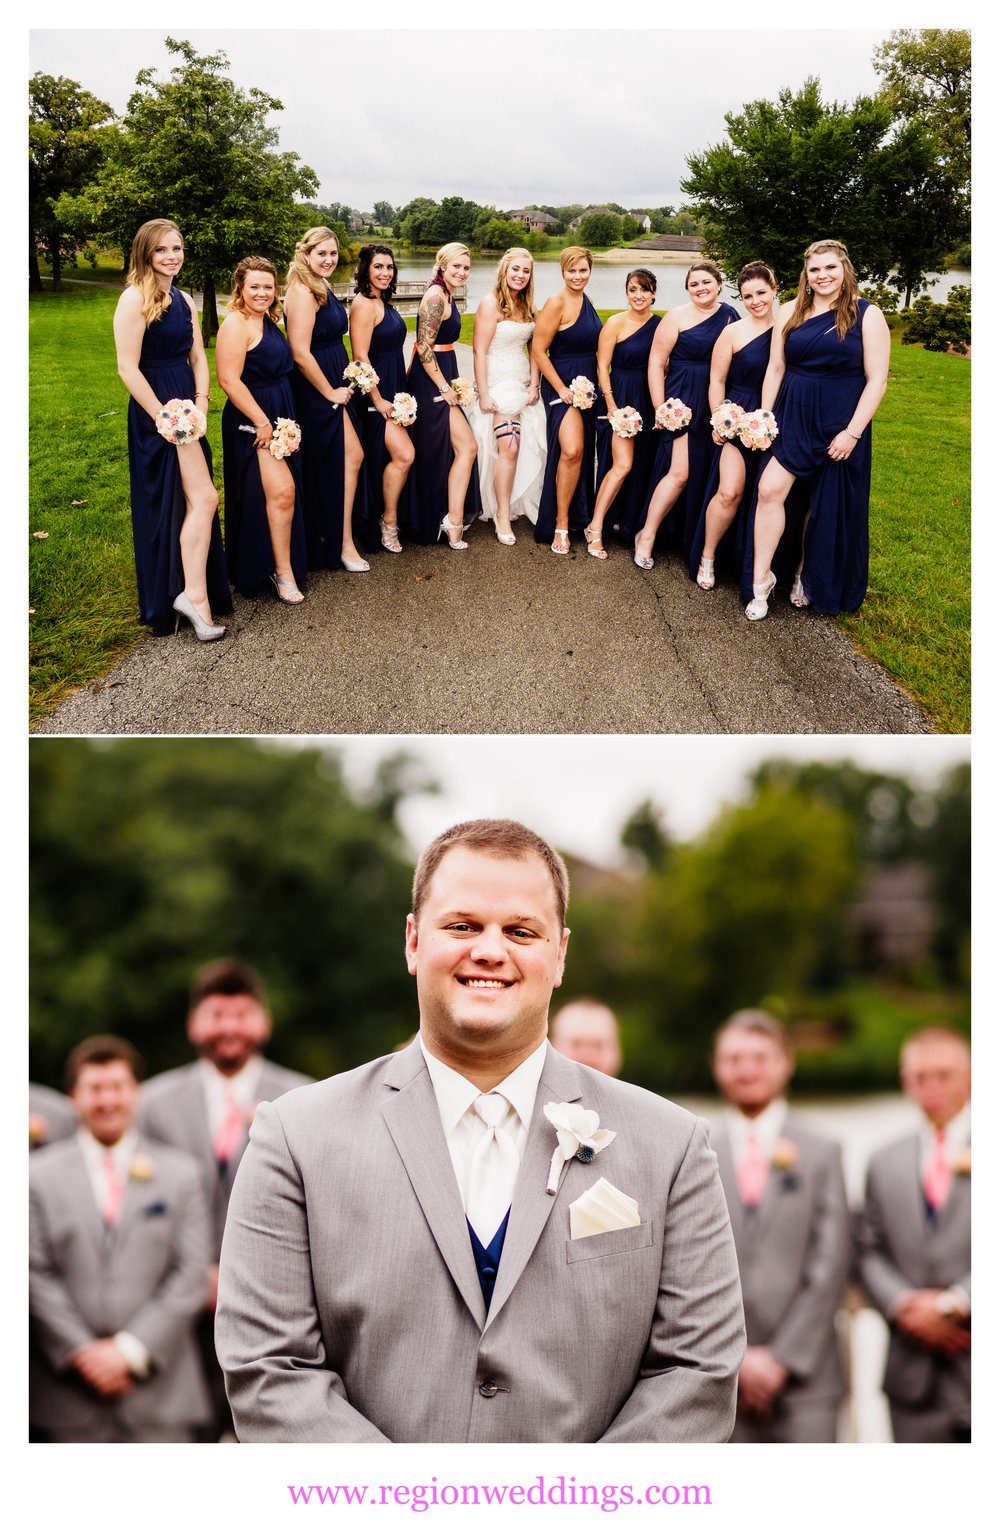 Bridesmaids and groomsmen photos.